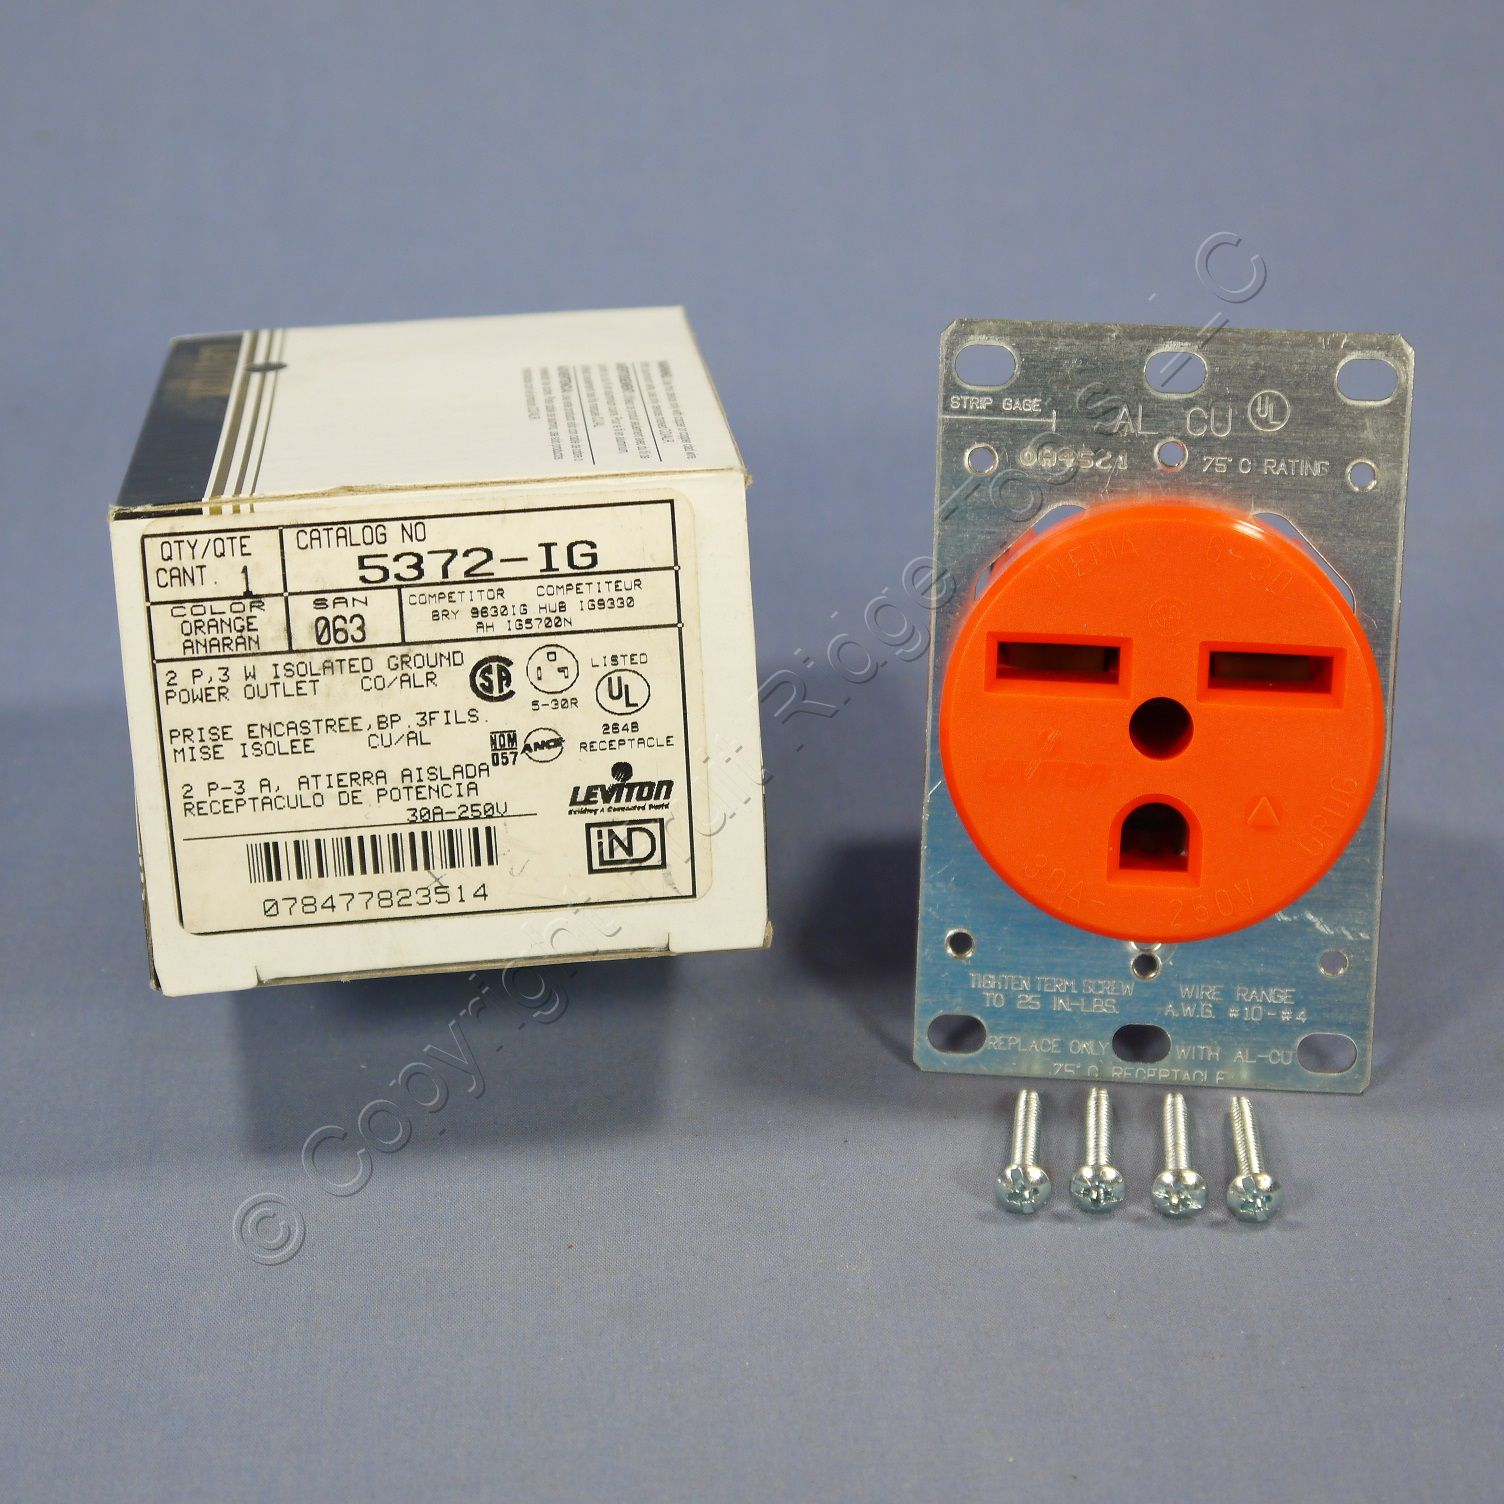 hight resolution of leviton orange isolated ground receptacle duplex outlet isolated ground wiring new leviton isolated ground receptacle outlet 6 30 30a